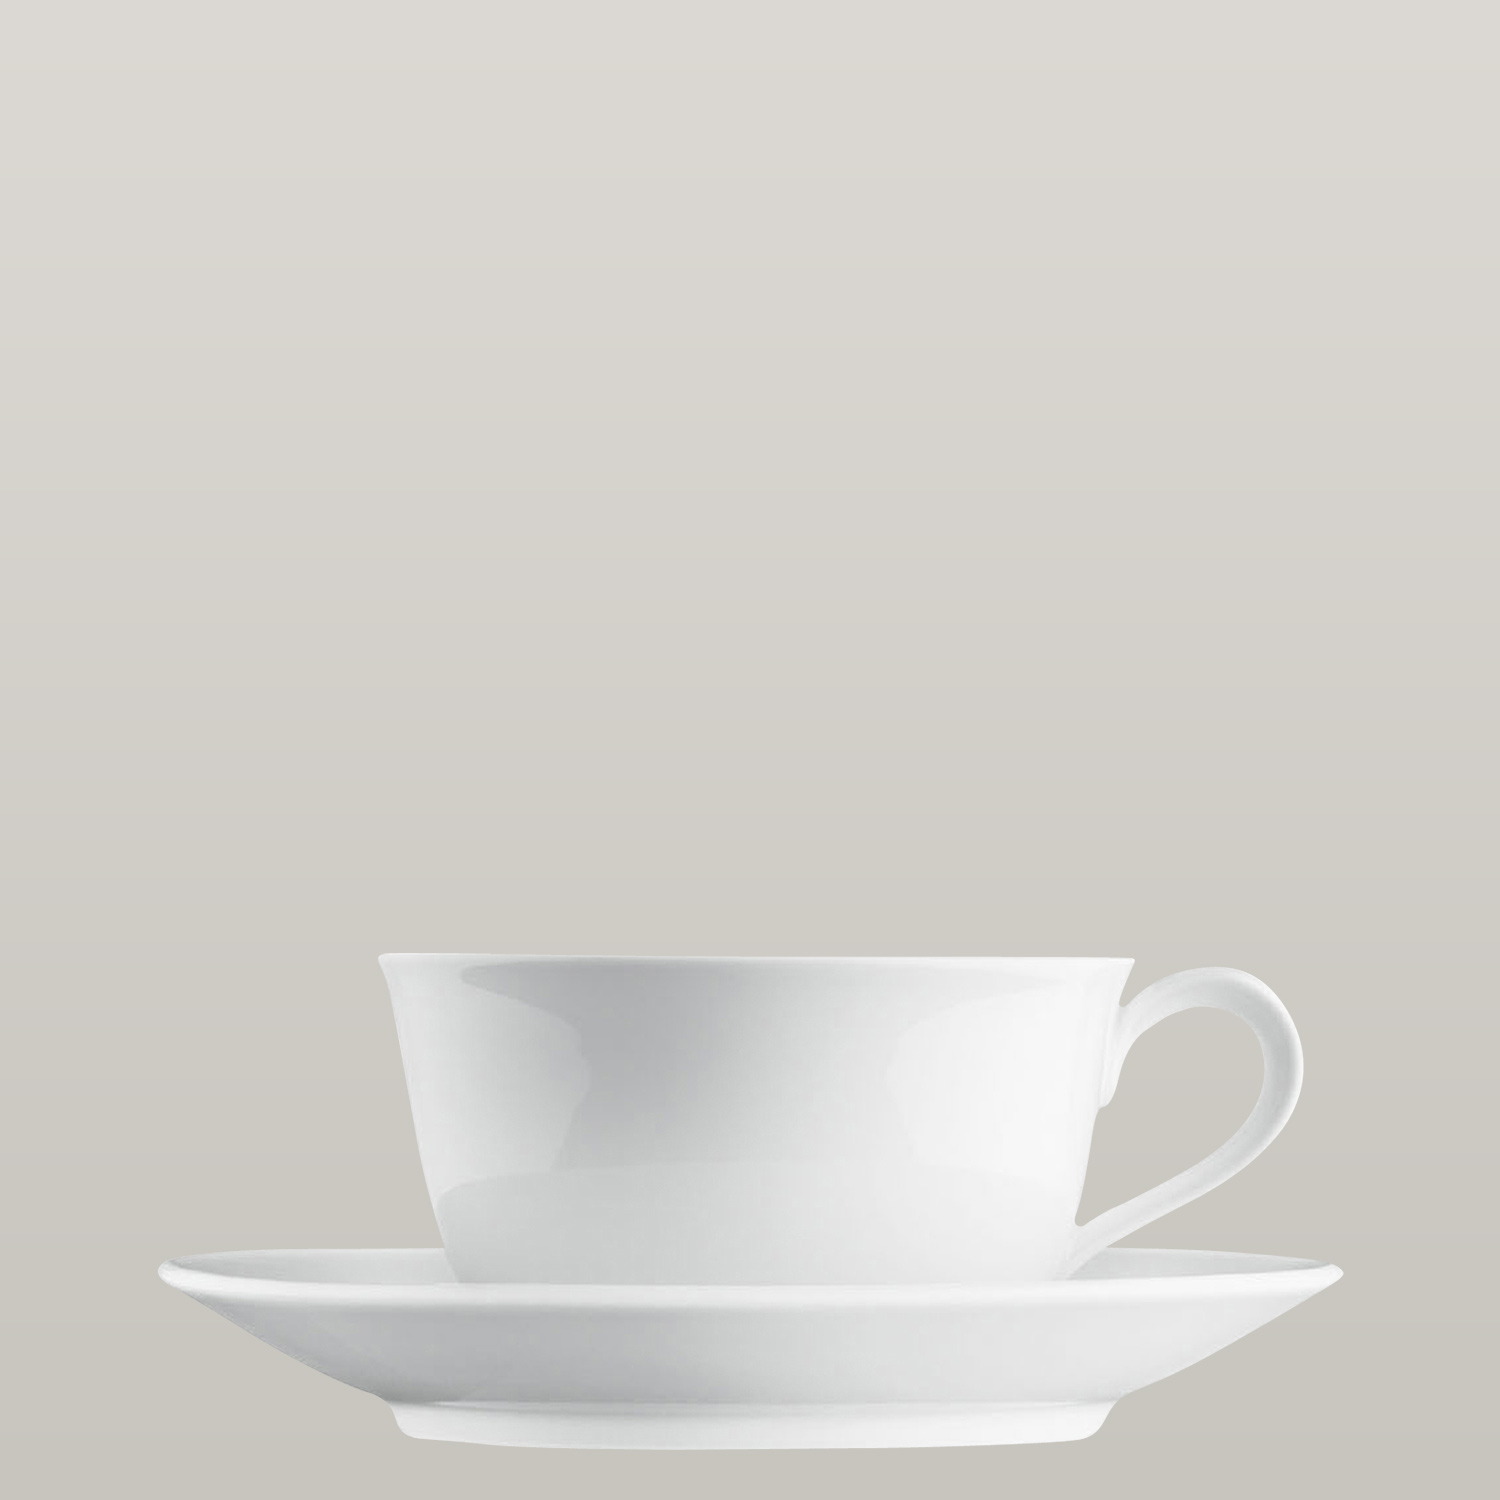 Cappuccino cup, Saucer